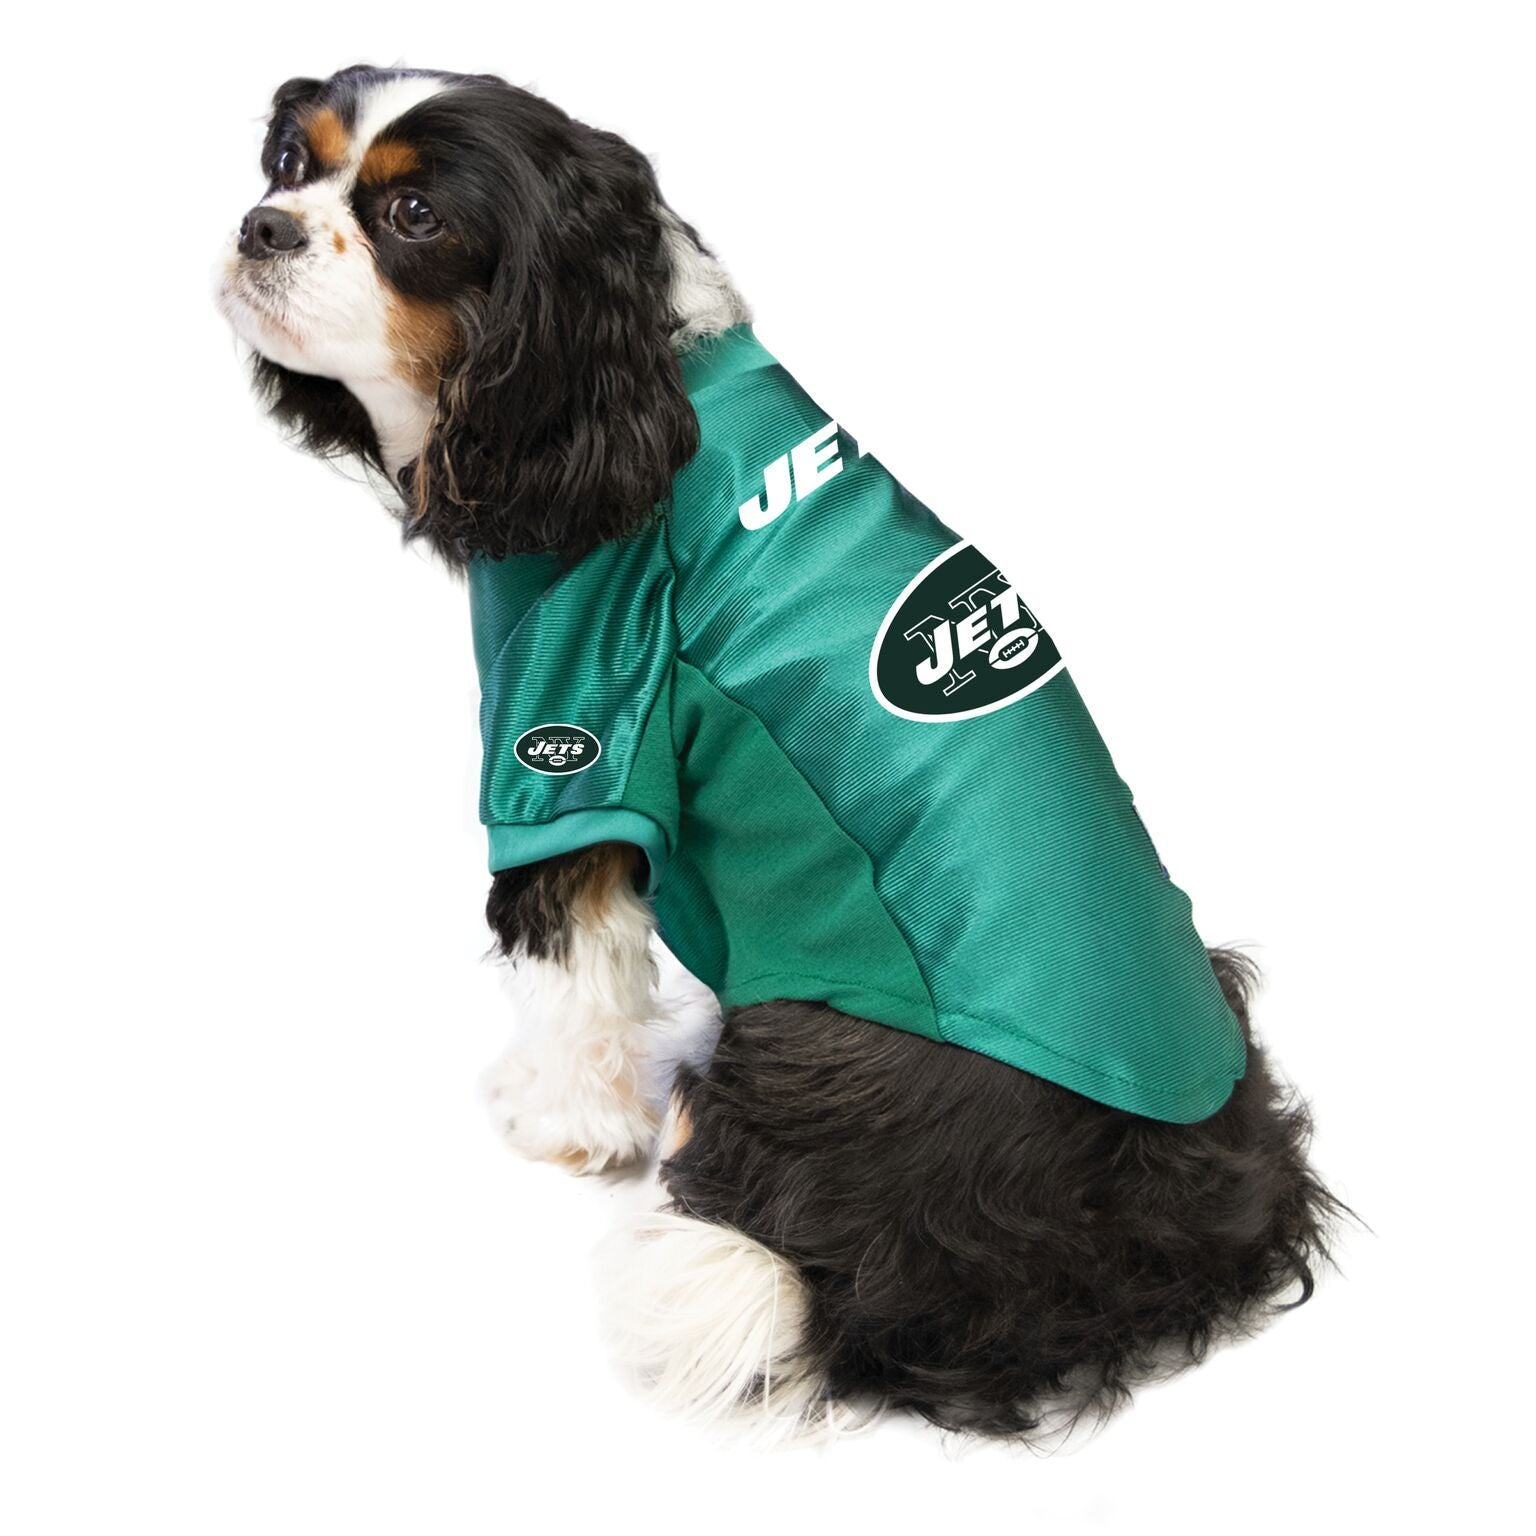 Jets outfit for dogs